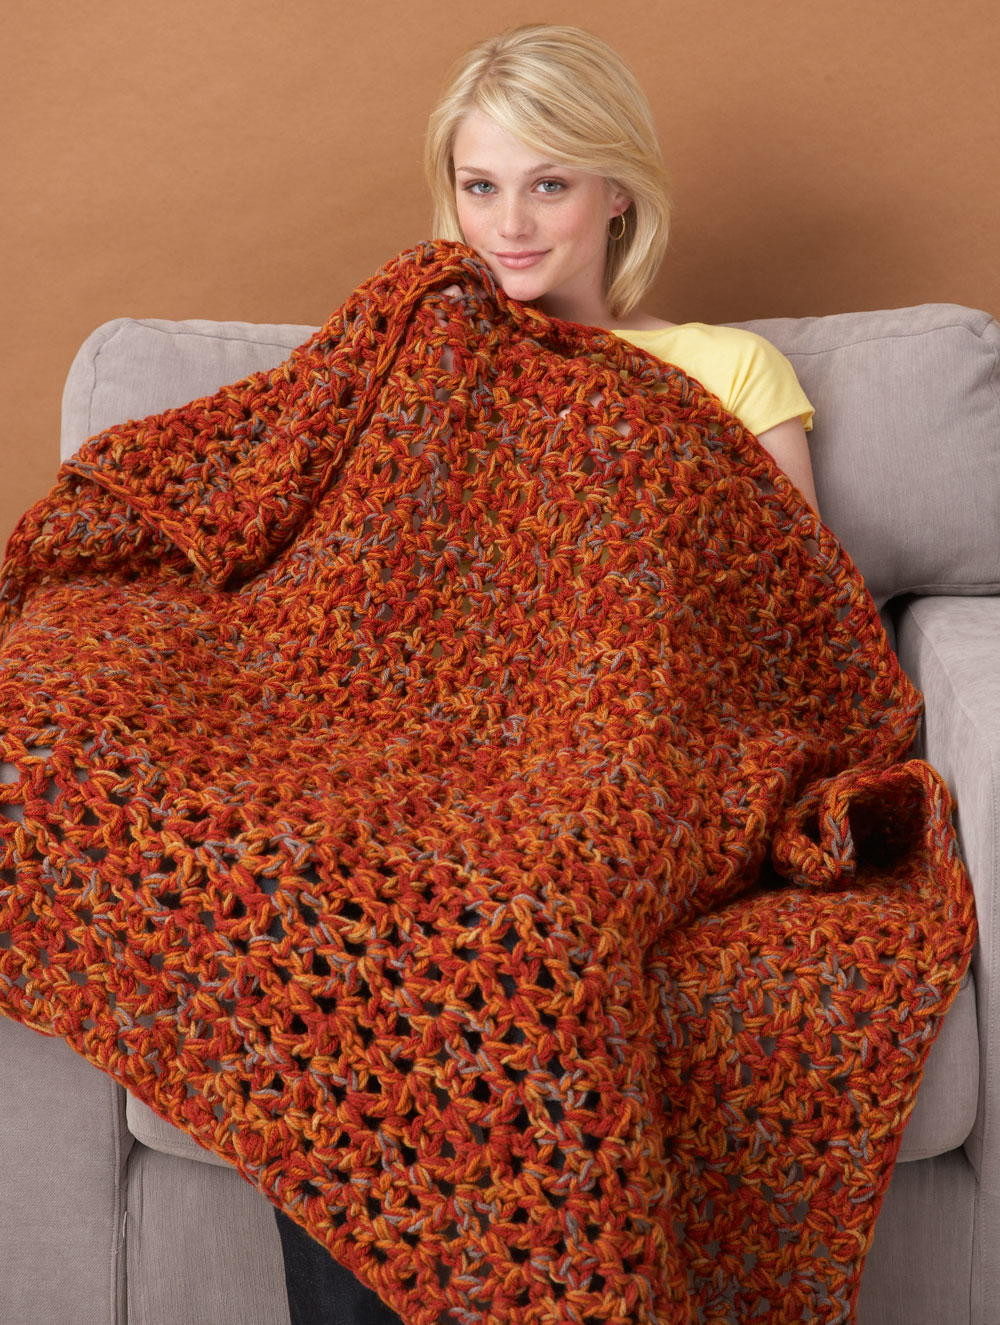 Luxury 31 Crochet Afghan Patterns for Fall All Free Crochet Patterns Of Wonderful 50 Pictures All Free Crochet Patterns